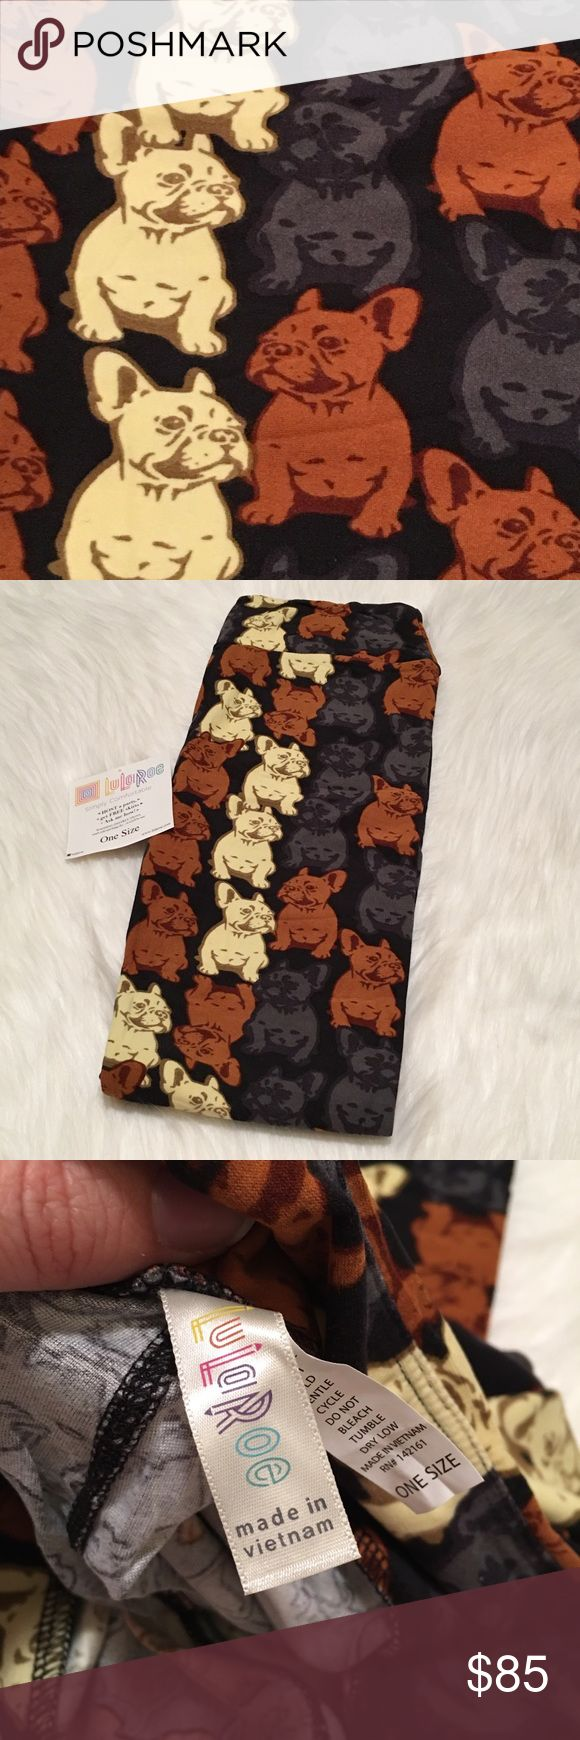 """🦄NWT LuLaRoe OS French Bulldog Leggings (UNICORN) **No comments on pricing. Price reflects how rare/hard to find the leggings are, amount of time spent searching for them & average sale prices of these """"unicorns"""" online.**   NWT, never worn. LuLaRoe leggings. The leggings that are """"buttery"""" soft! Pattern: French bulldogs, very hard to find!🦄 Size: One Size (OS). See size chart.  Made in: Vietnam.   🚫TRADES. Am open to *reasonable* offers on this pair. 😍 LuLaRoe Pants Leggings"""